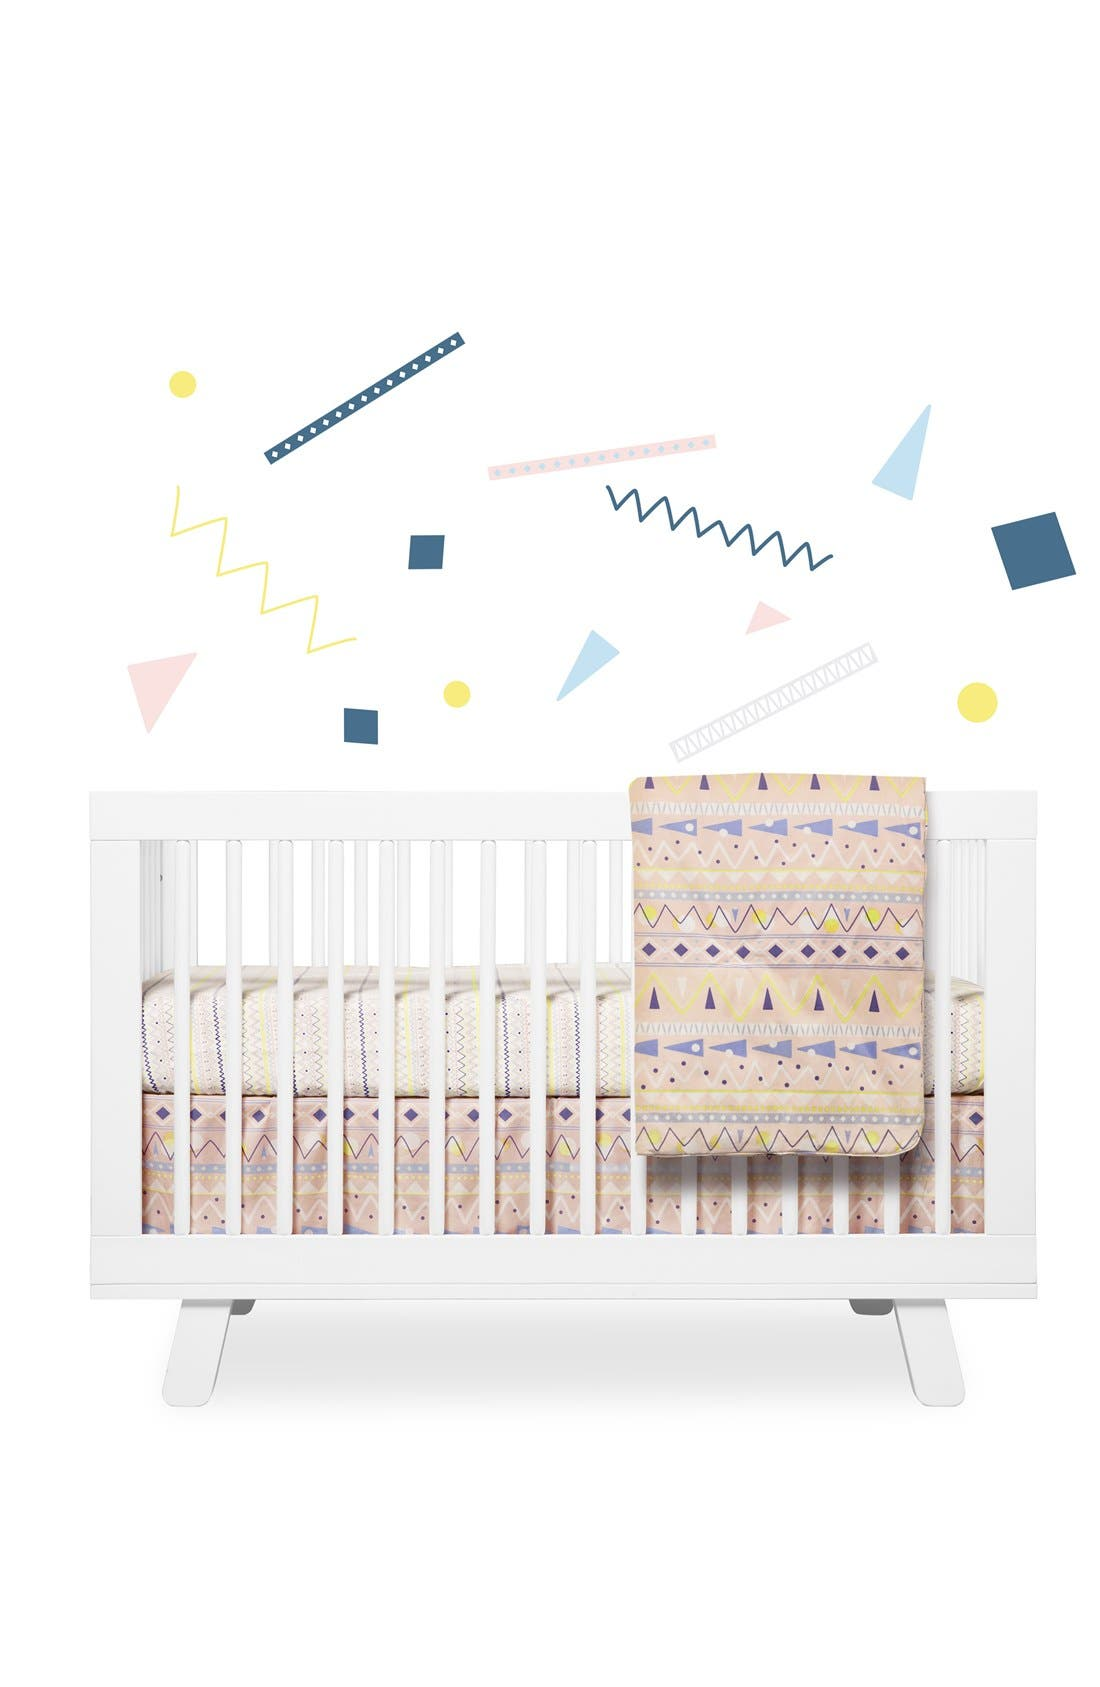 'Desert' Crib Sheet, Crib Skirt, Changing Pad Cover, Blanket & Wall Decals,                         Main,                         color, Off White